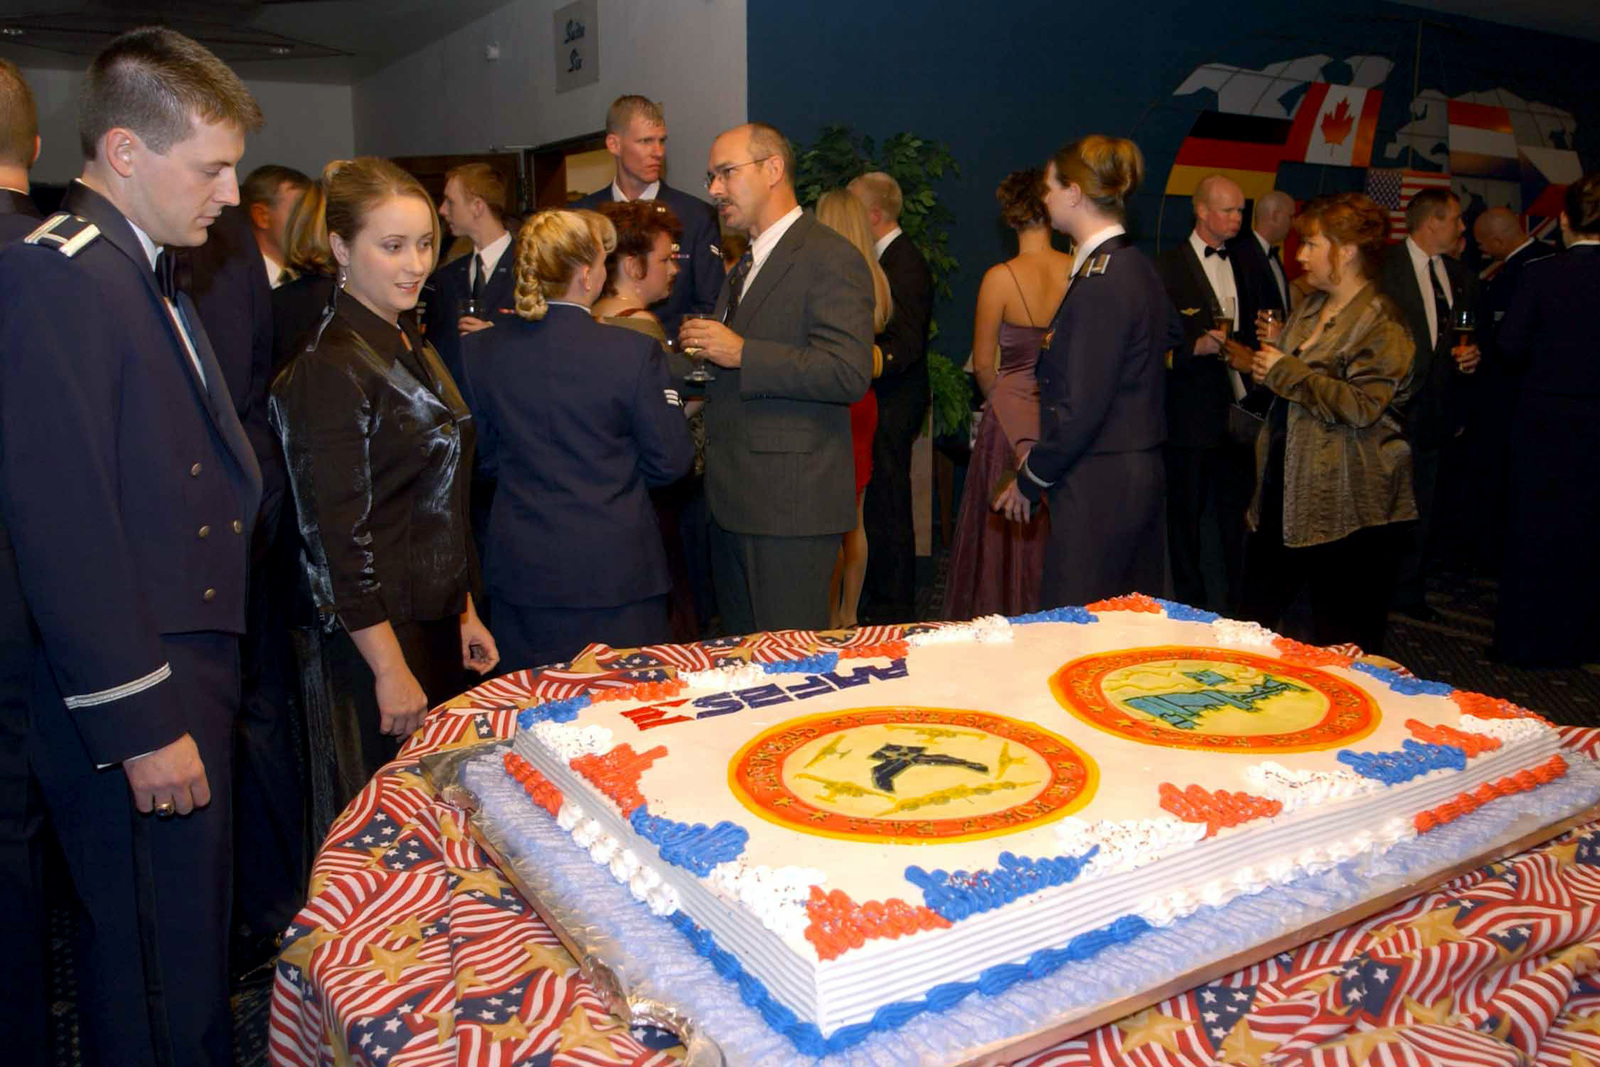 US Military personnel and members of the Ramstein Air Base Community gather to enjoy Food, Dancing, and various other forms of entertainment, during the US Air Force (USAF) Fifty-Fifth Birthday Ball Cerebration held at Ramstein Air Base (AB), Germany